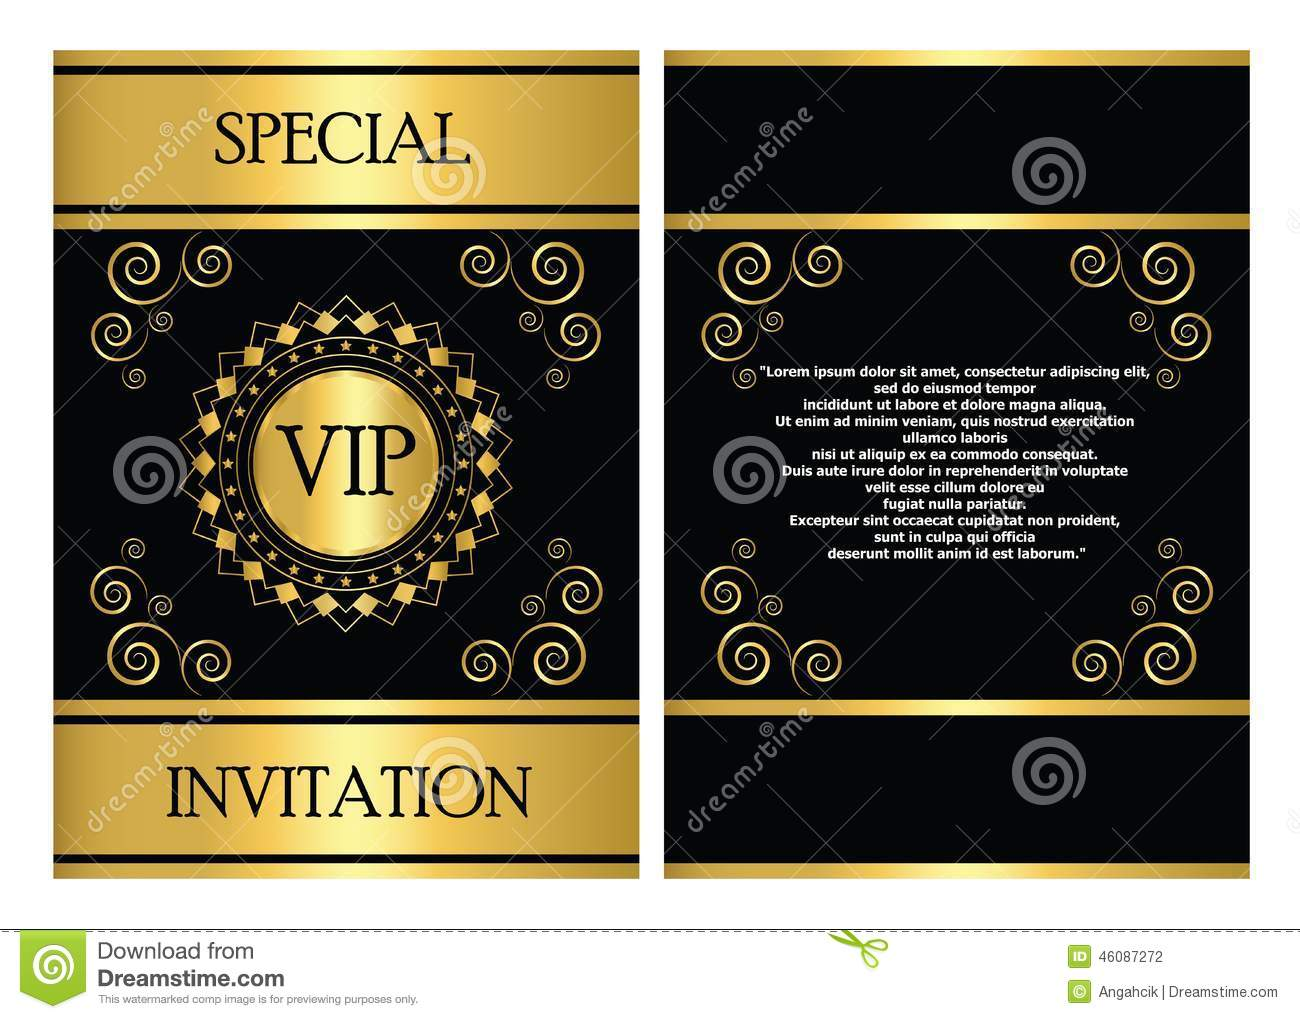 Vip Pass Invitations is nice invitations layout